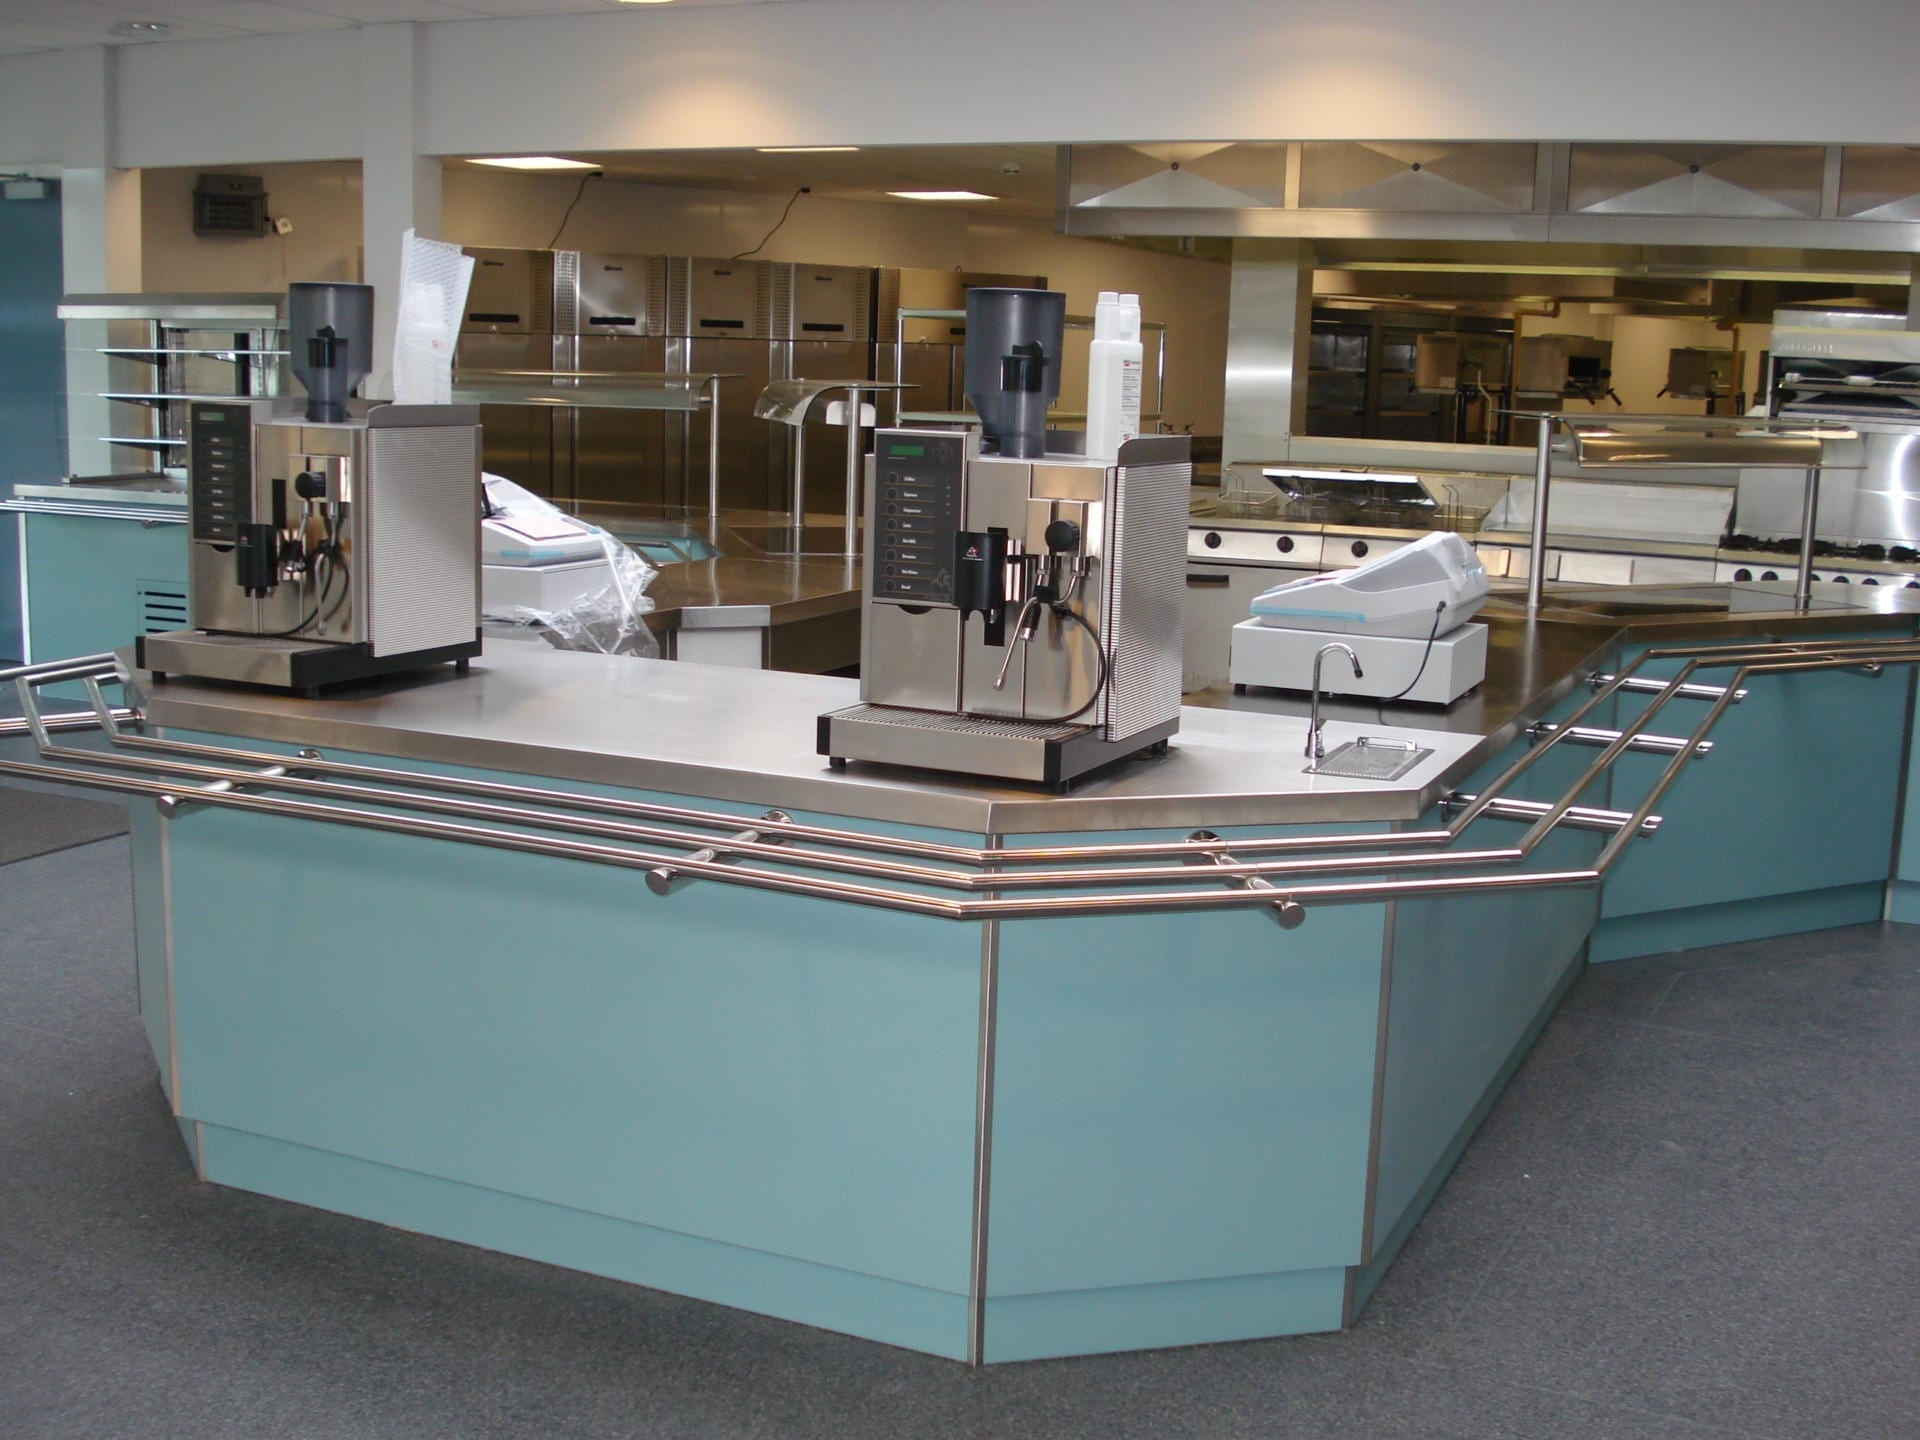 Gloucester-College-Gloucester-Servery-Stainless-Steel-fabrication-cooking-Foodtech-teaching-spacecatering_1